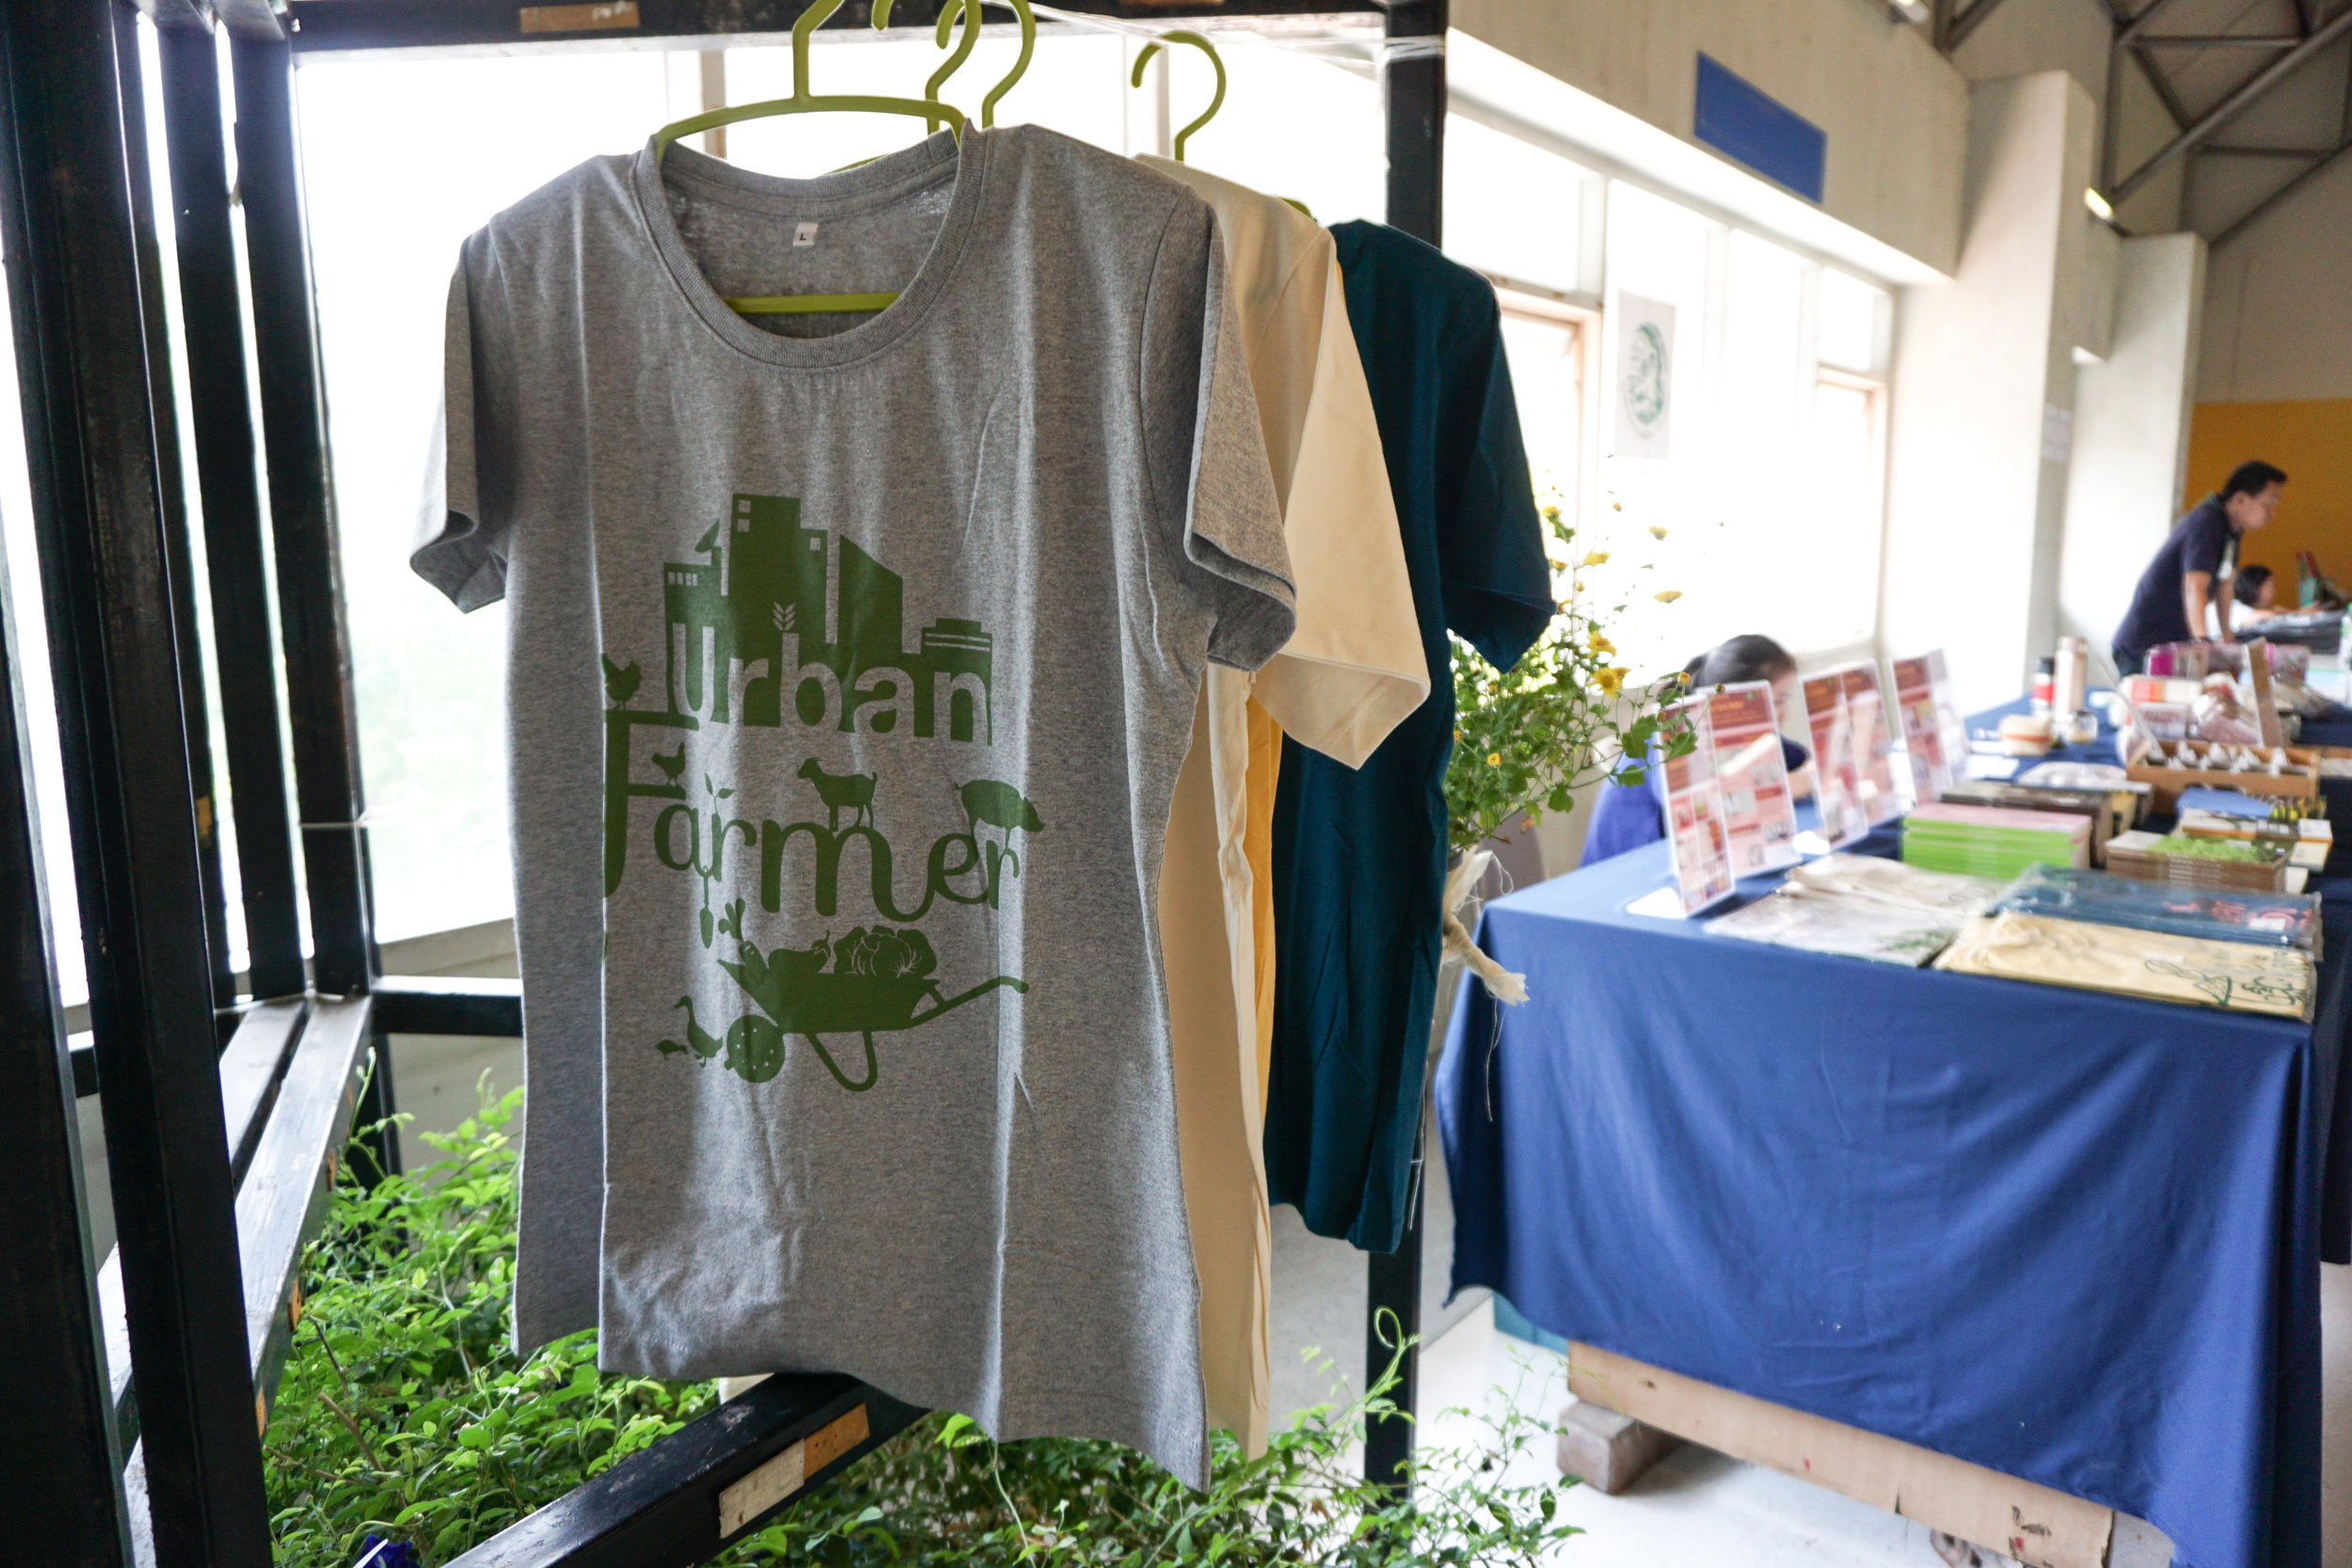 City Farming for a Sustainable City Event: Goods for sale